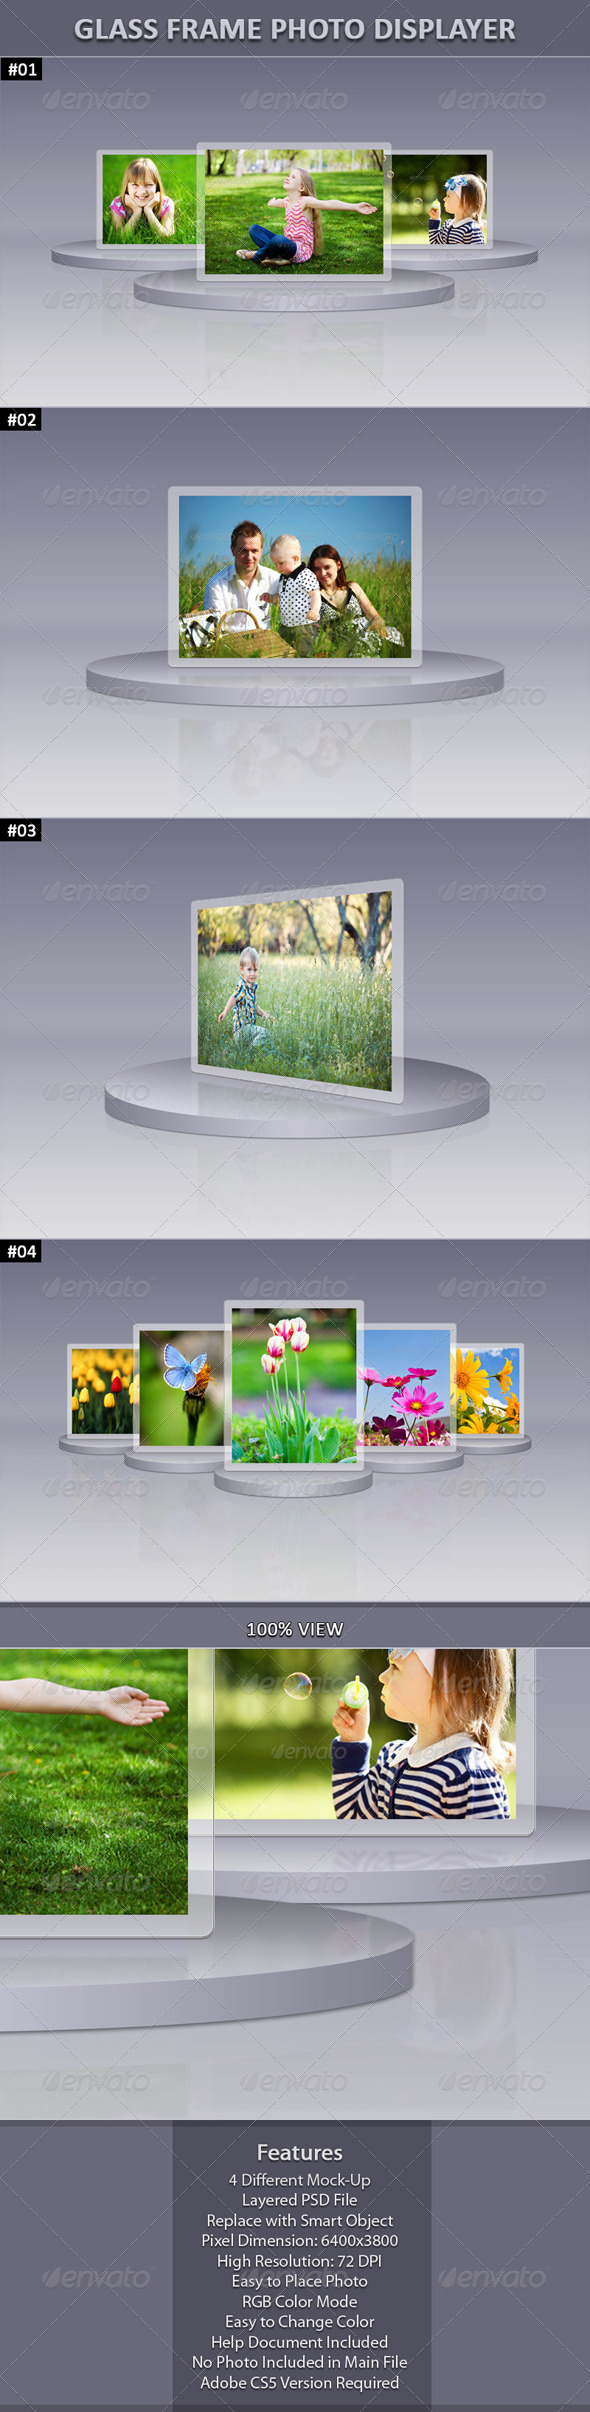 Glass Frame Photo Display - Miscellaneous Photo Templates